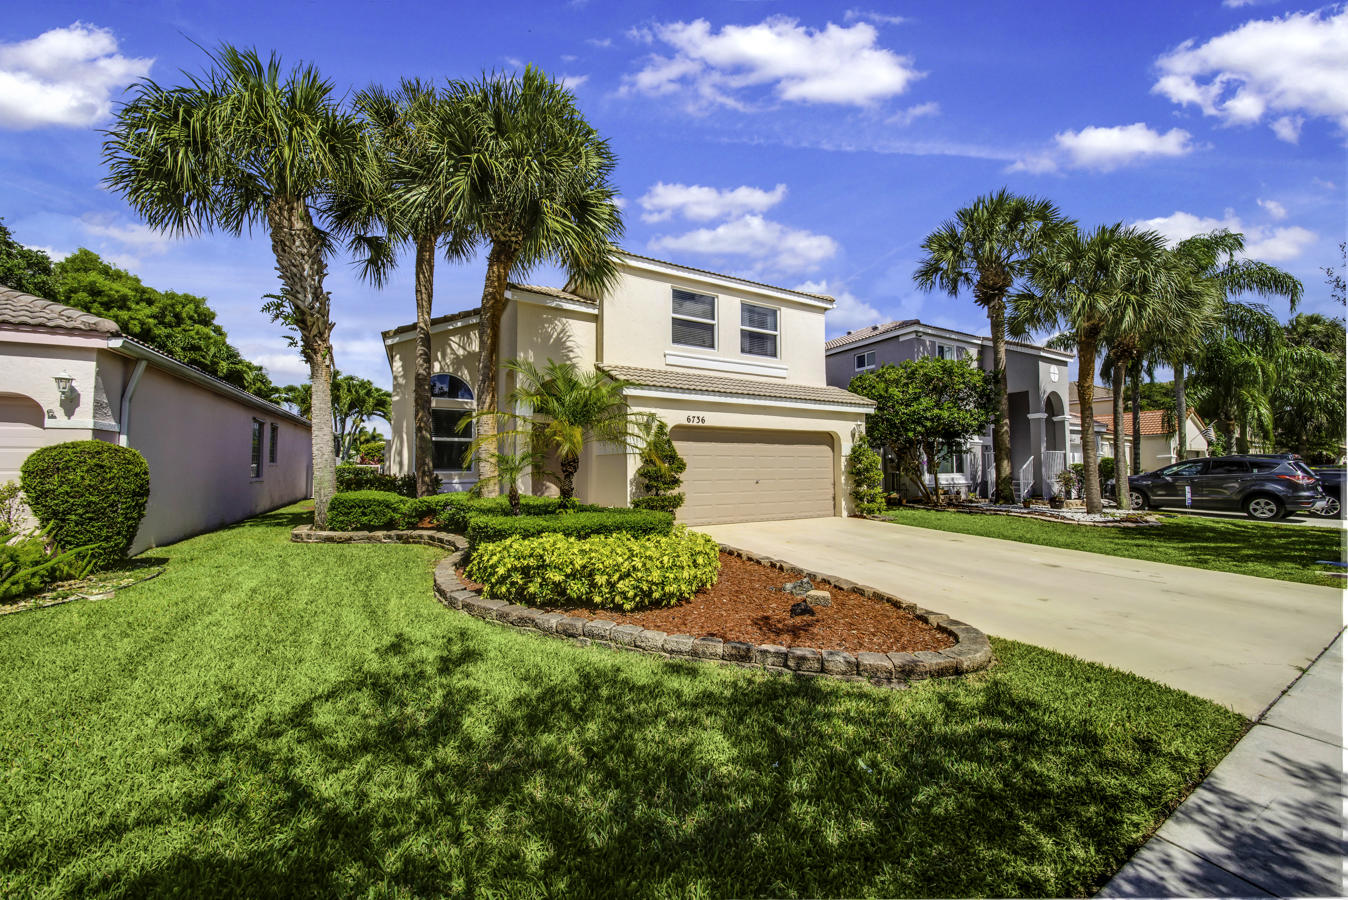 Home for sale in Millwalk Smith Dairy Lake Worth Florida